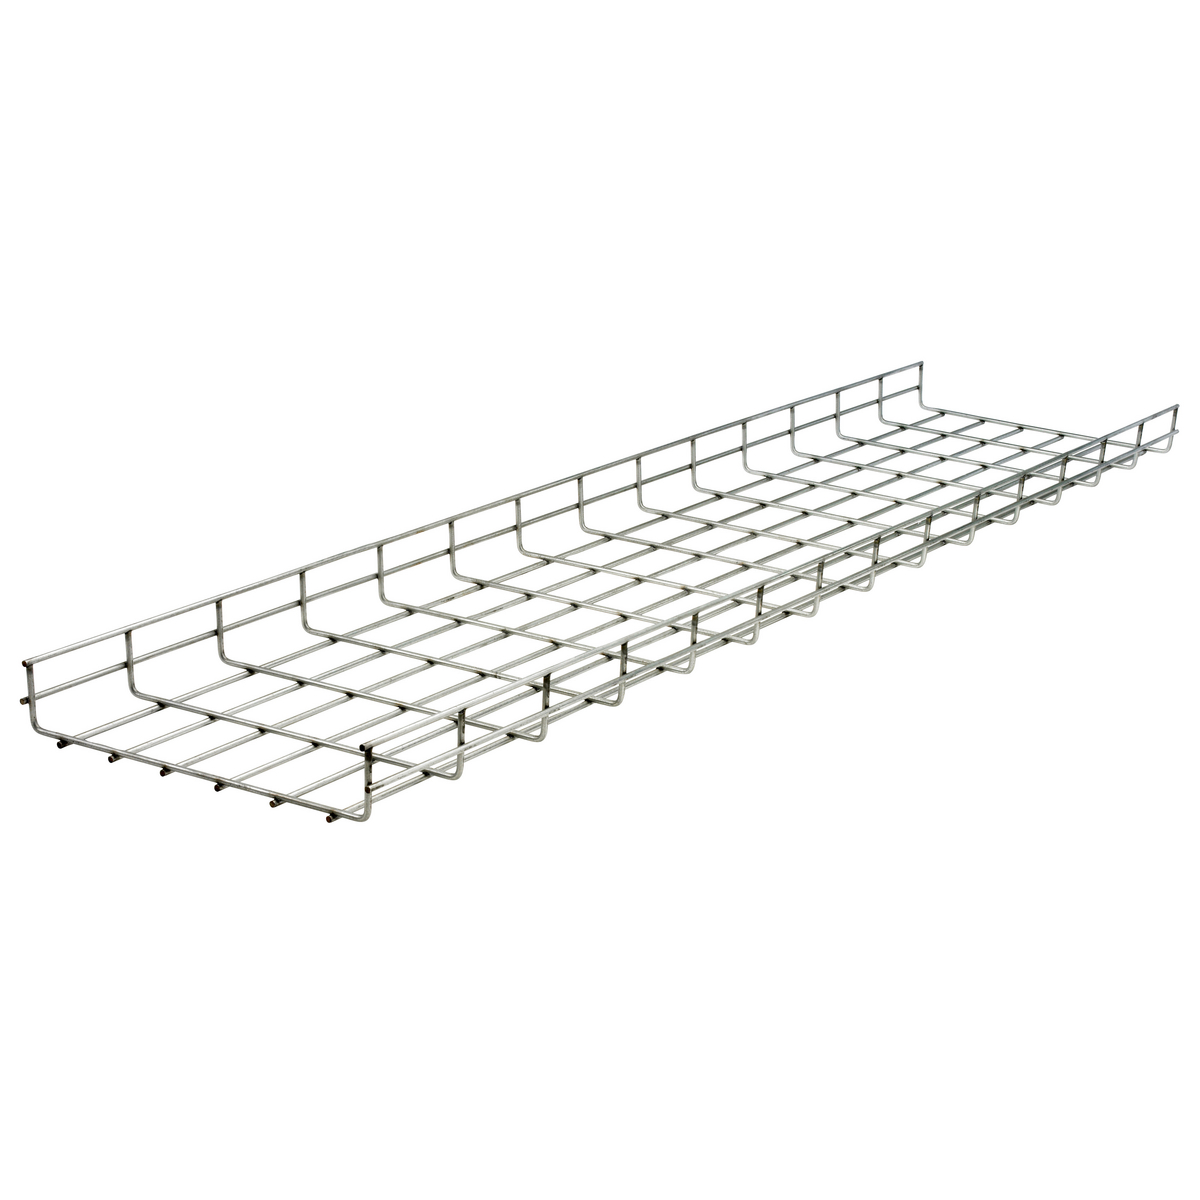 HUBHBT0212 WB,TRAY,OVRHD,2IN HX12IN WX118IN L,PREGALV,RND ,HBT0212, HUBBELL